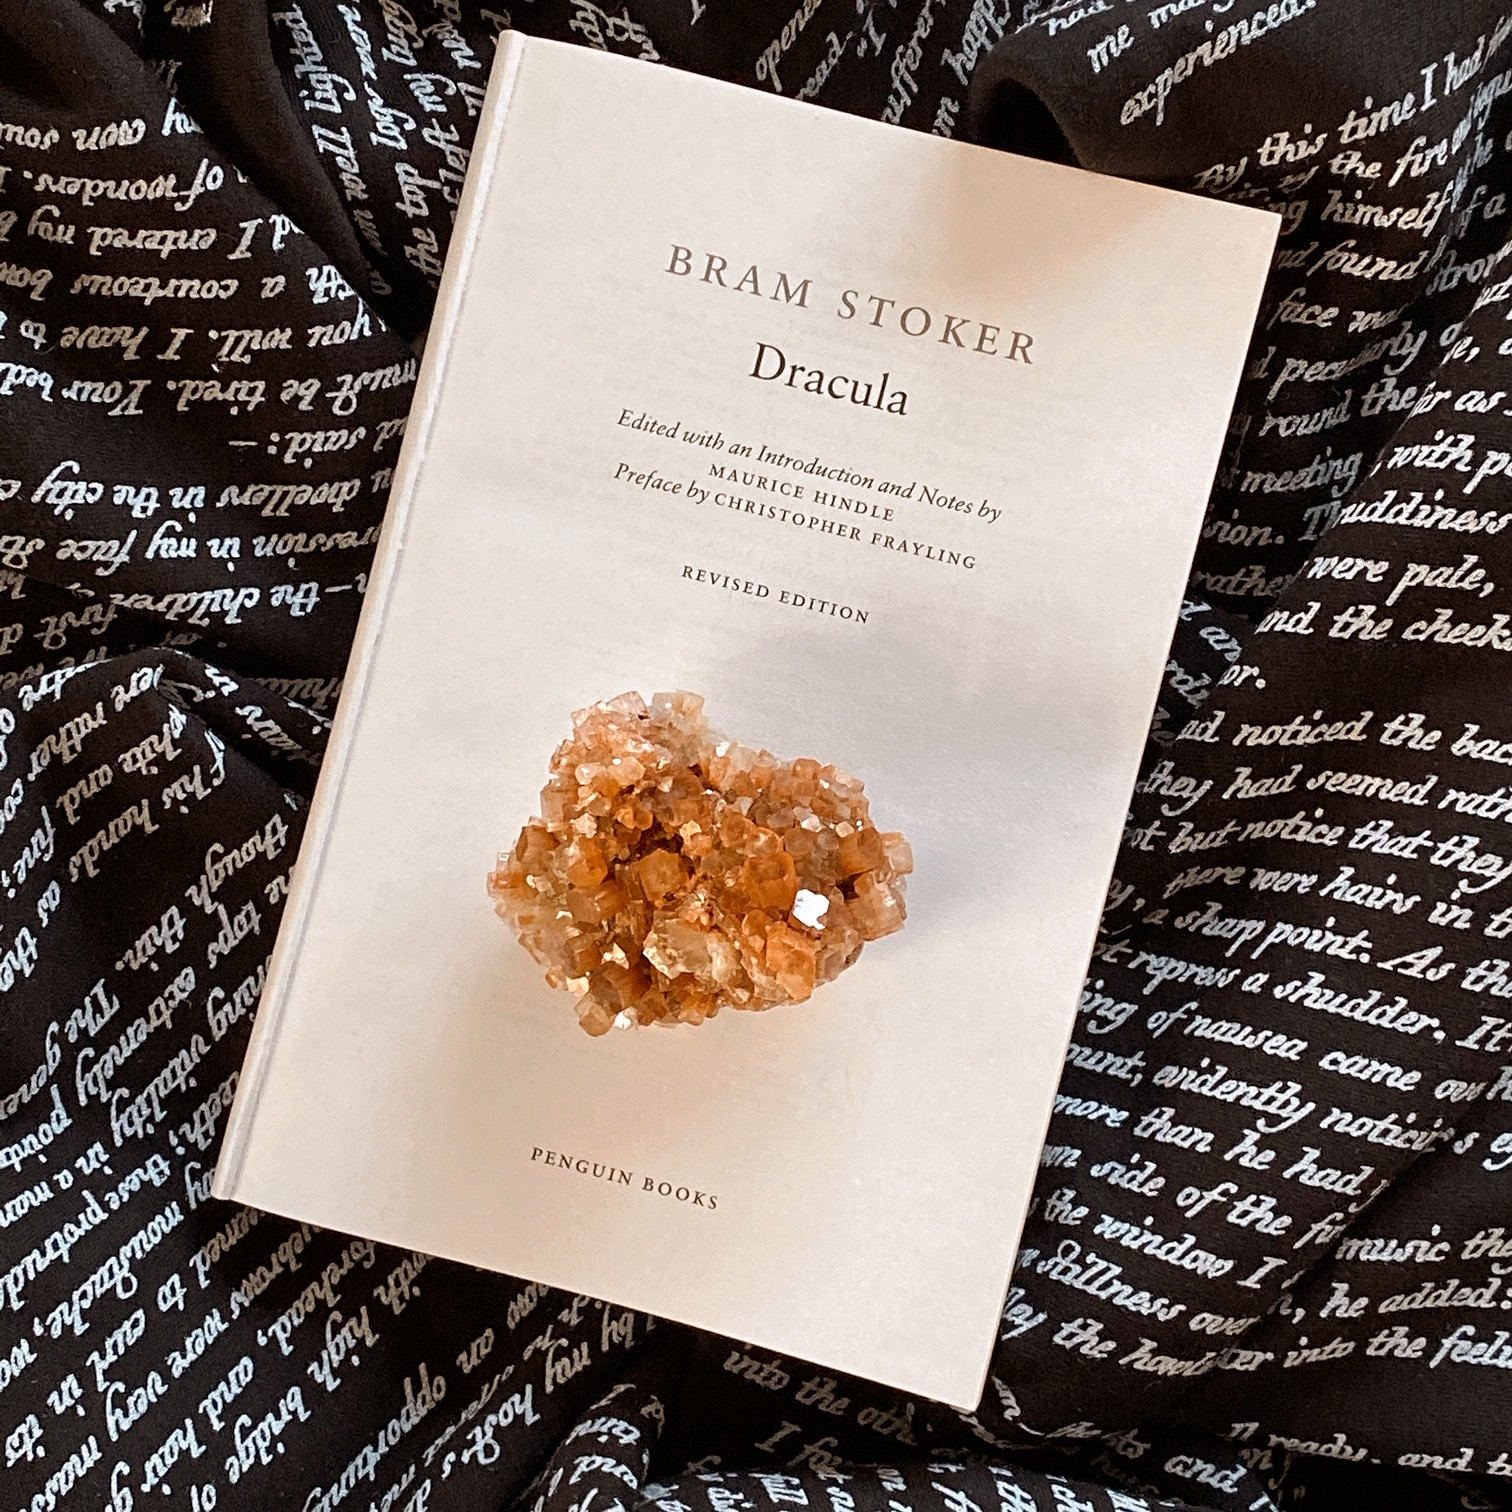 The first page of Dracula by Bram Stoker with an amber crystal cluster on it